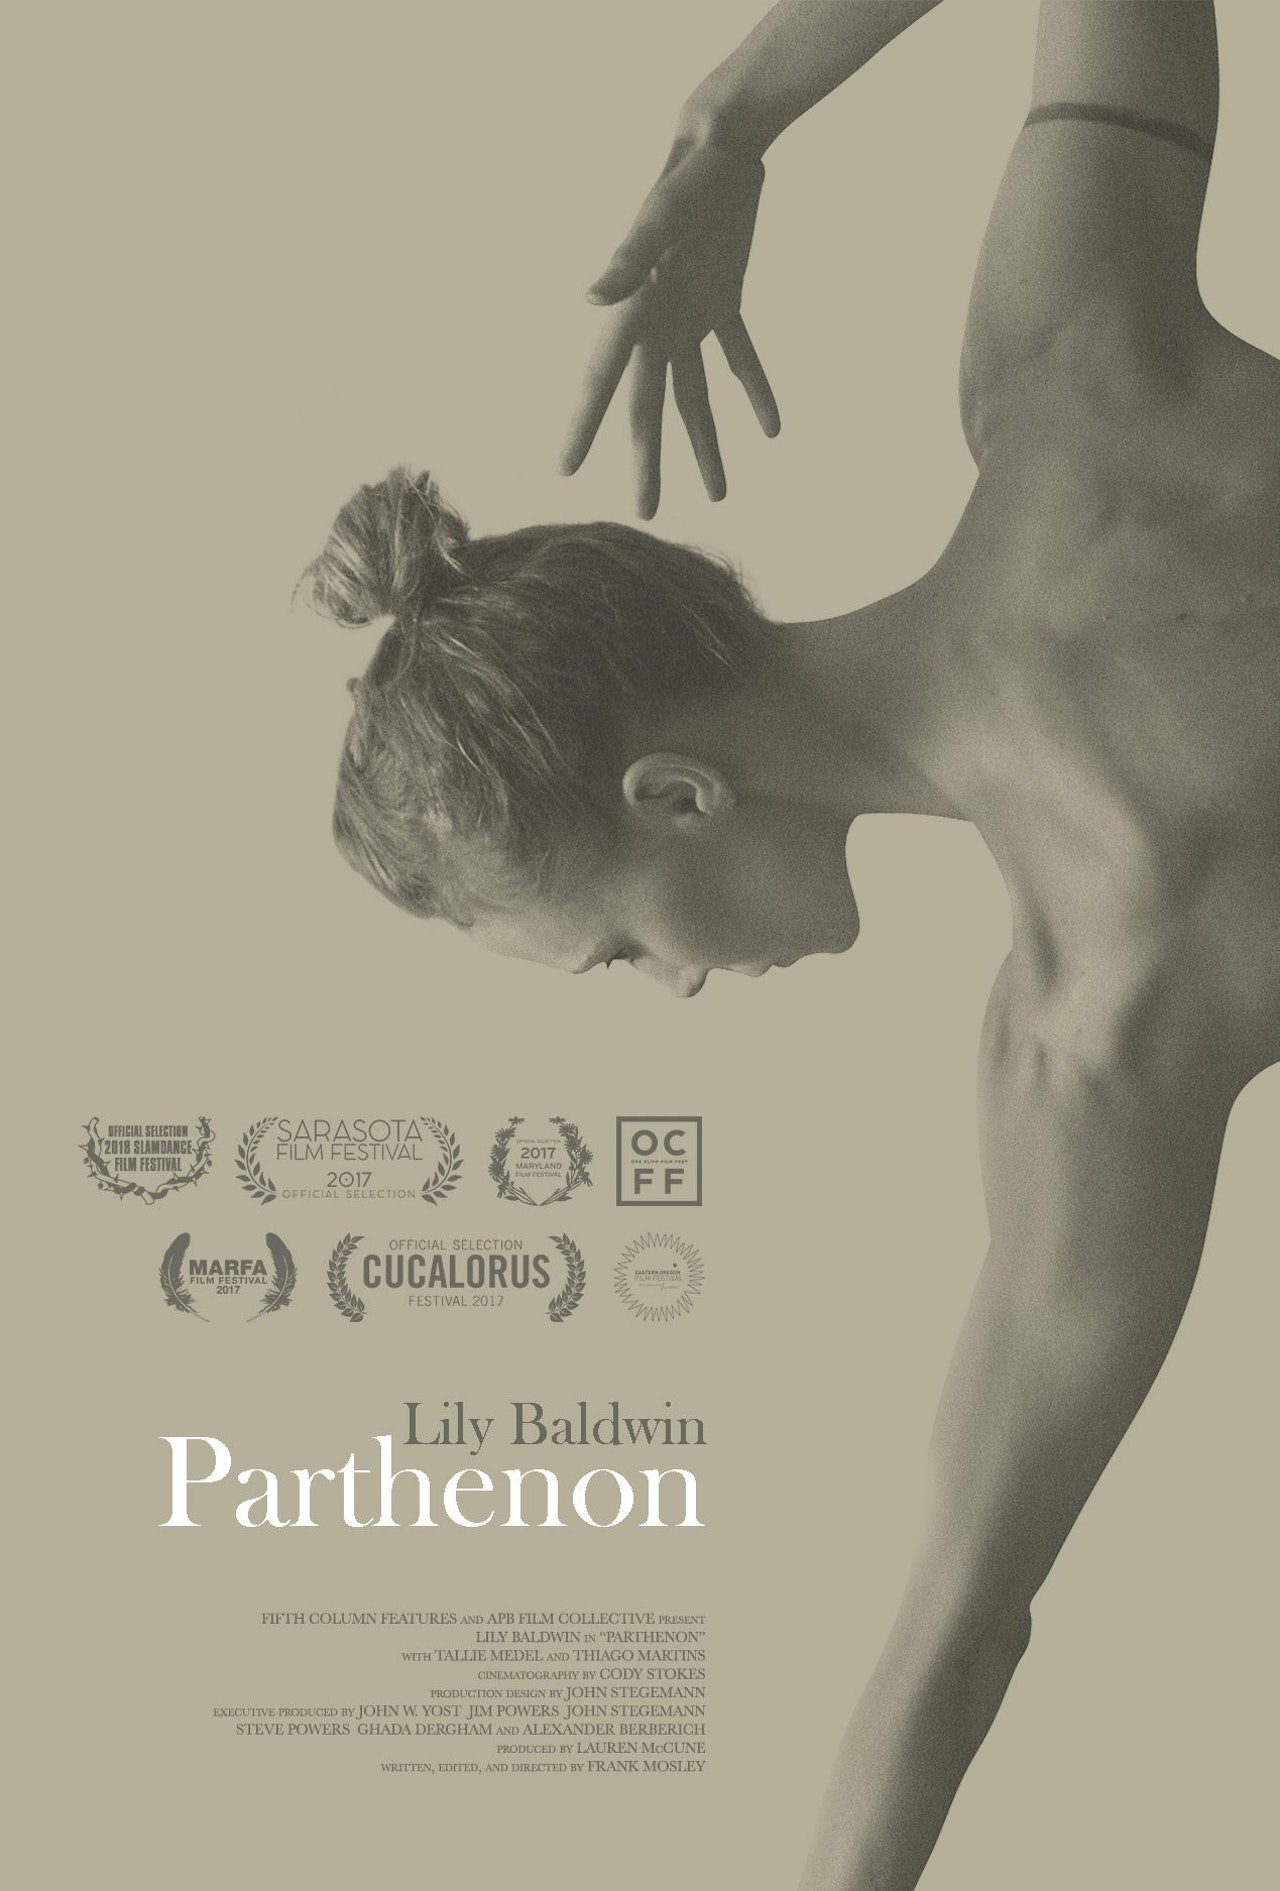 Parthenon featuring Lily Baldwin premieres on NoBudge